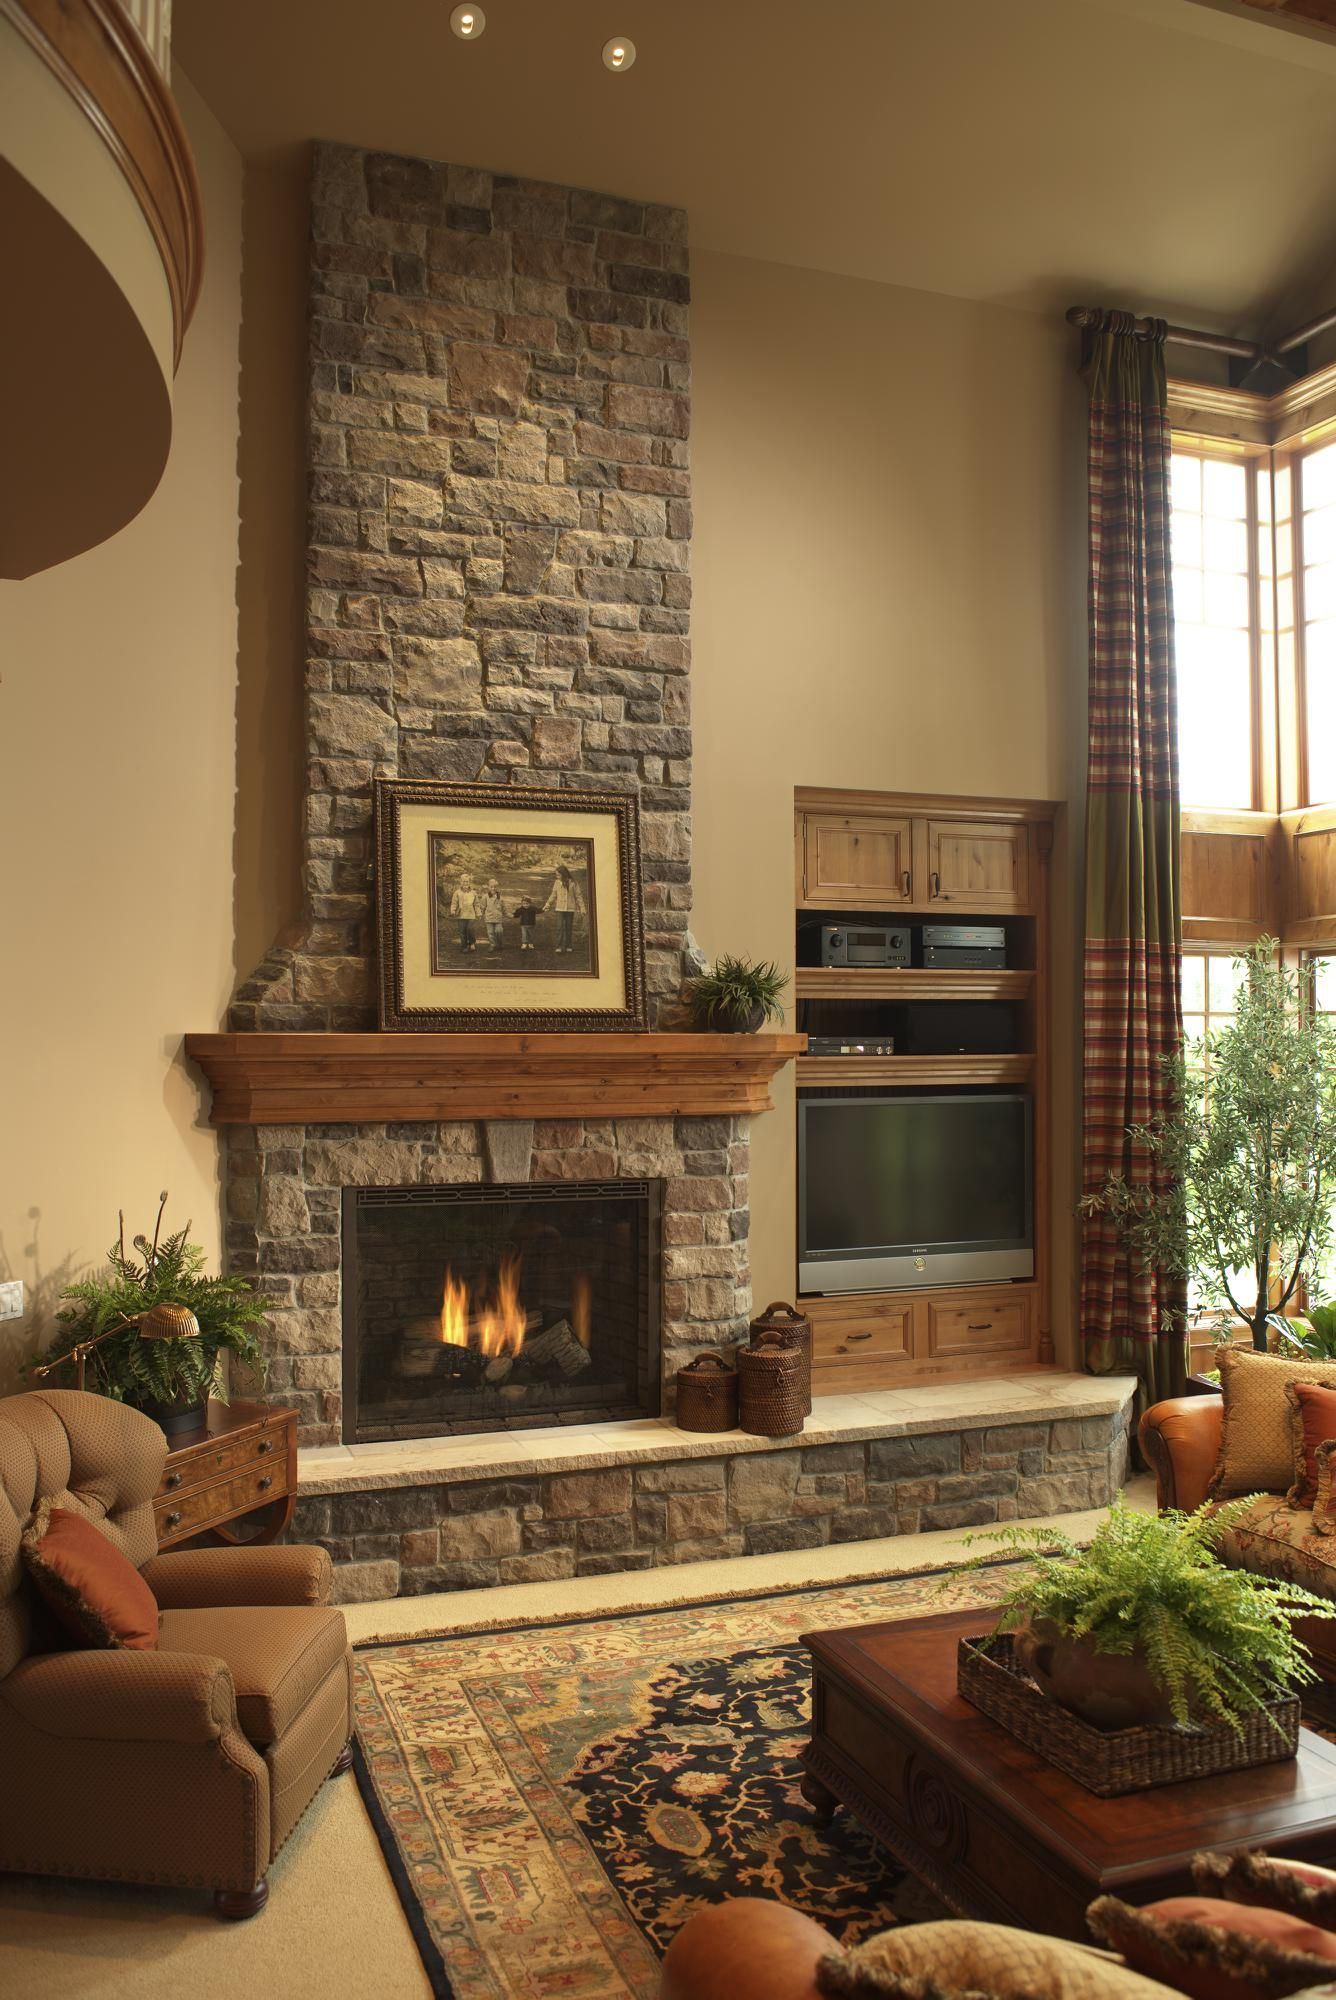 Fireplace gorgeous fireplace and heating stove ideas at